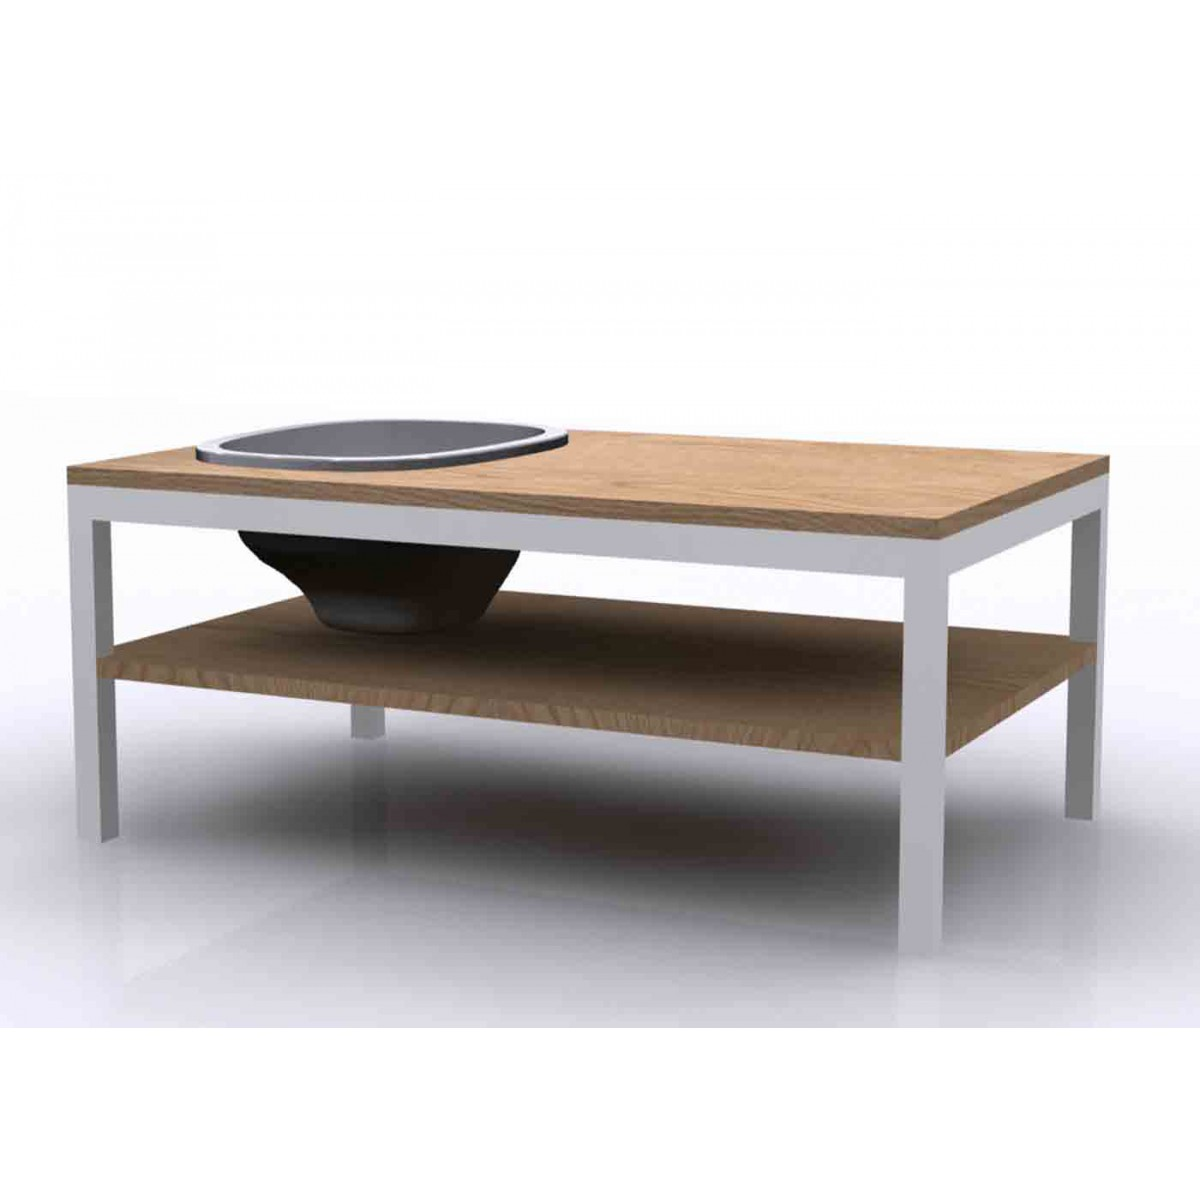 Table Basse Originale En Bois - Table Basse Originale En Bois u2013 Ezooq com